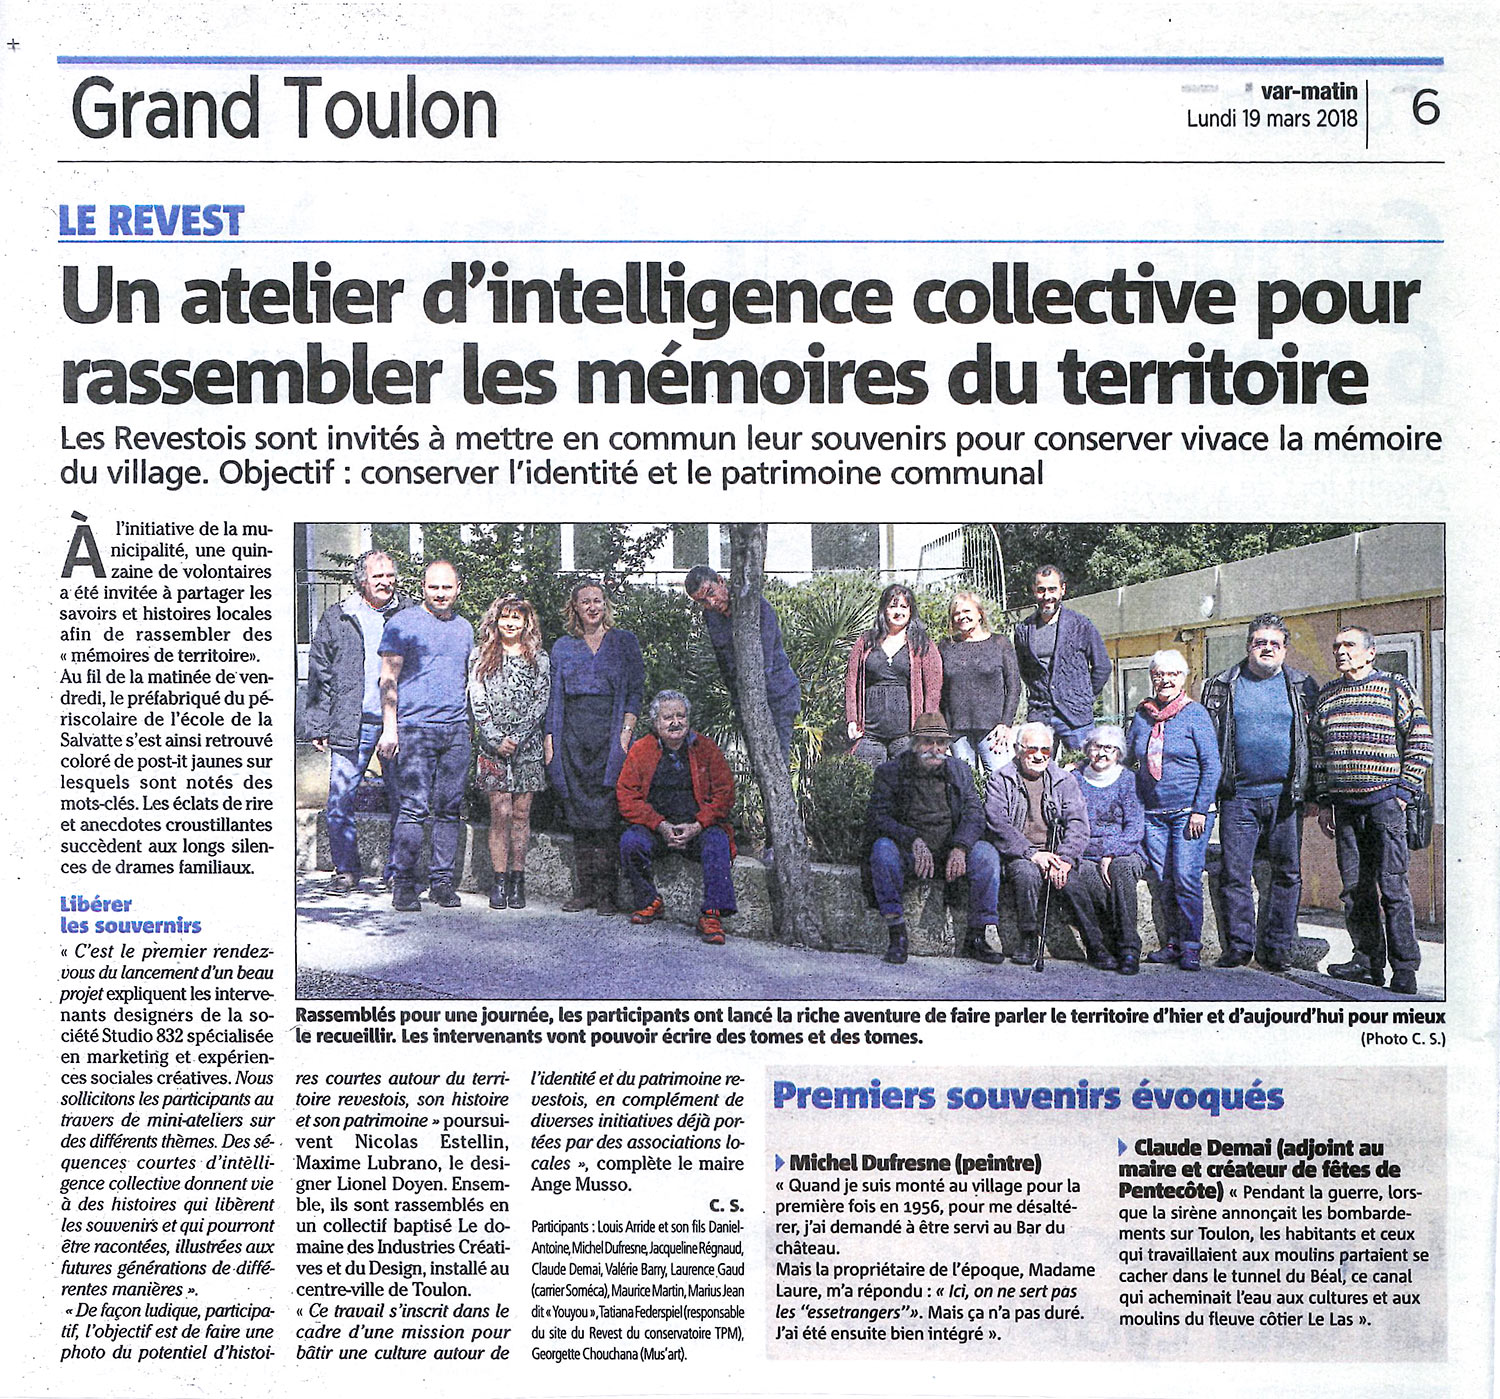 Marketing territorial Article presse Var Matin Atelier intelligence collective Toulon Var